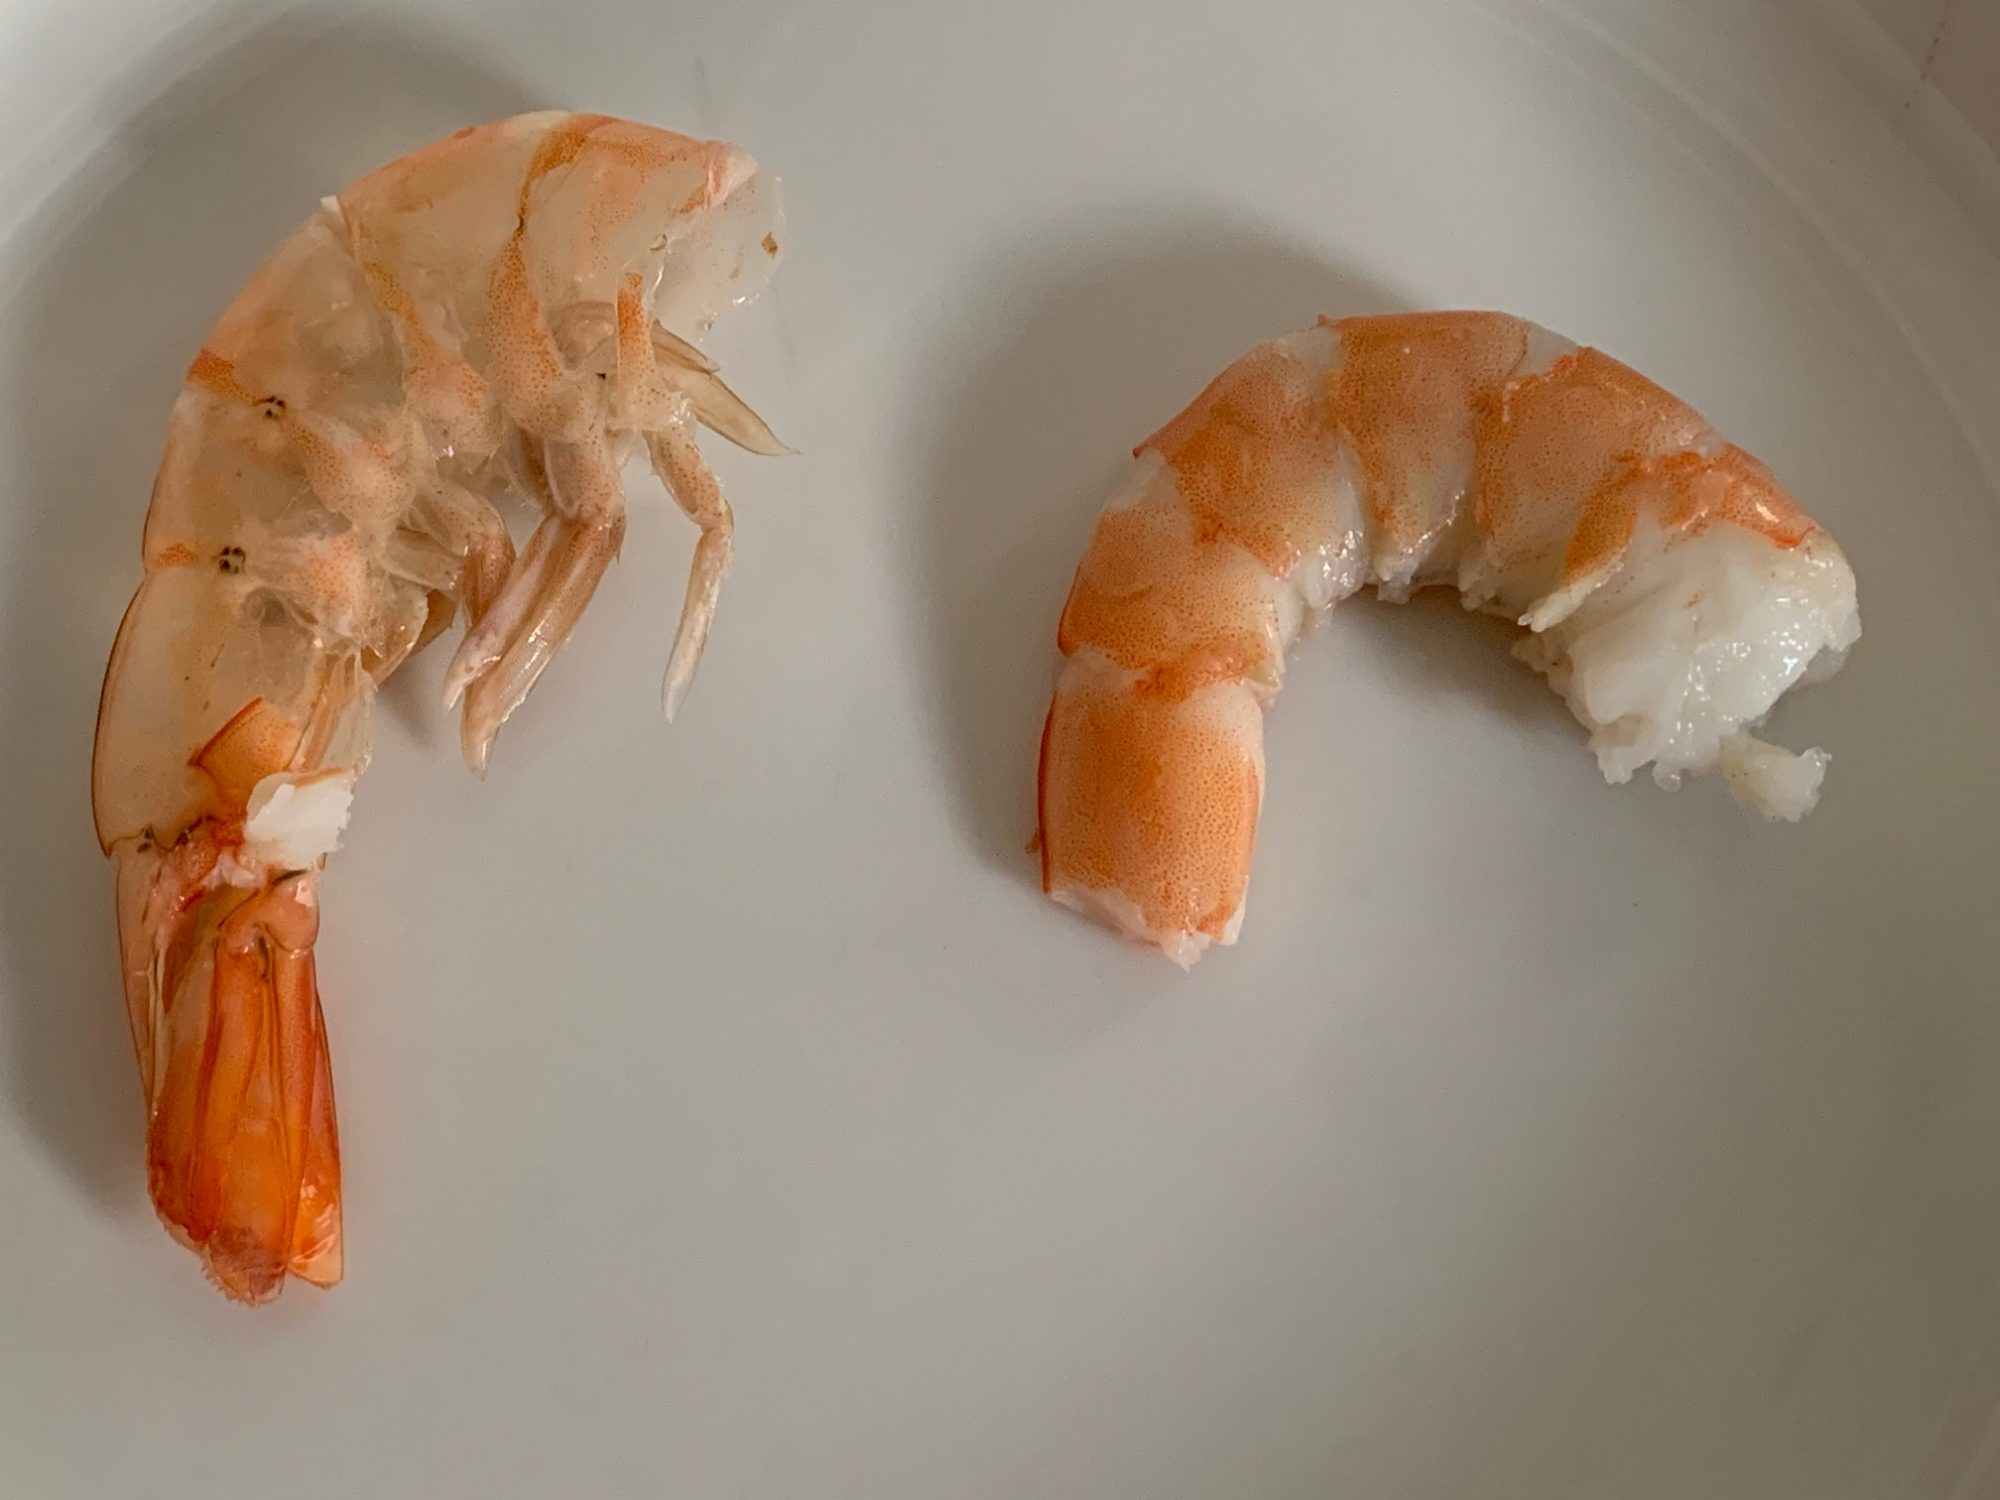 peeled cooked shrimp